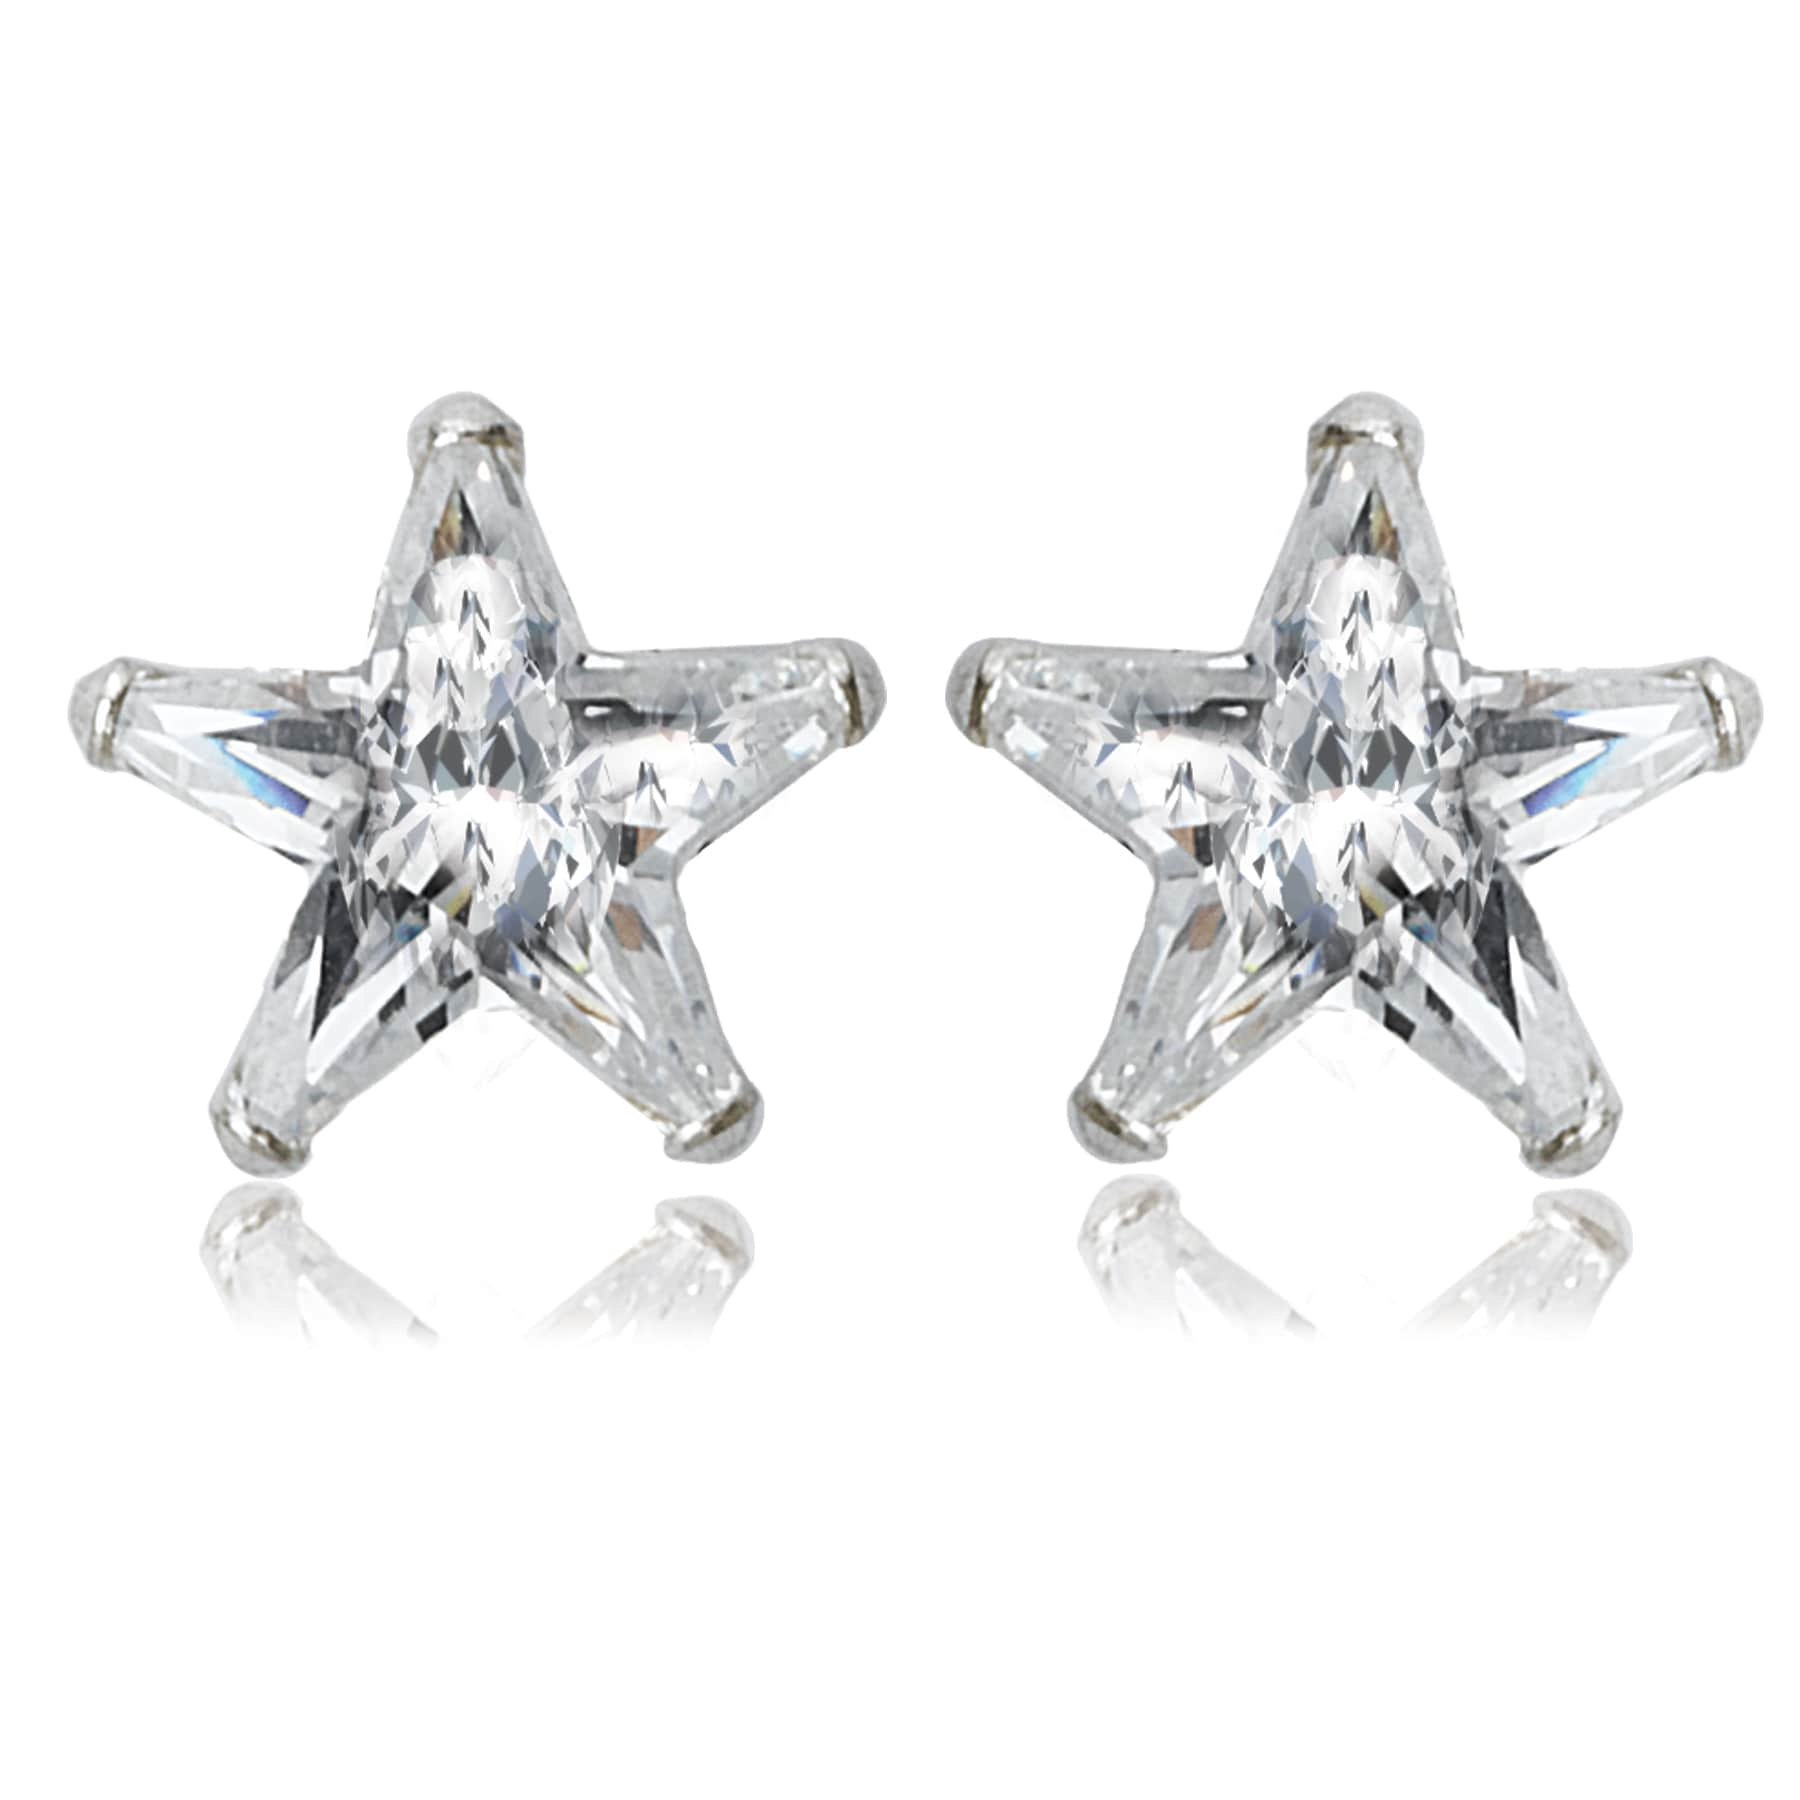 Avanti Sterling Silver Cubic Zirconia Star Shape Stud Earrings On Free Shipping Orders Over 45 13232646